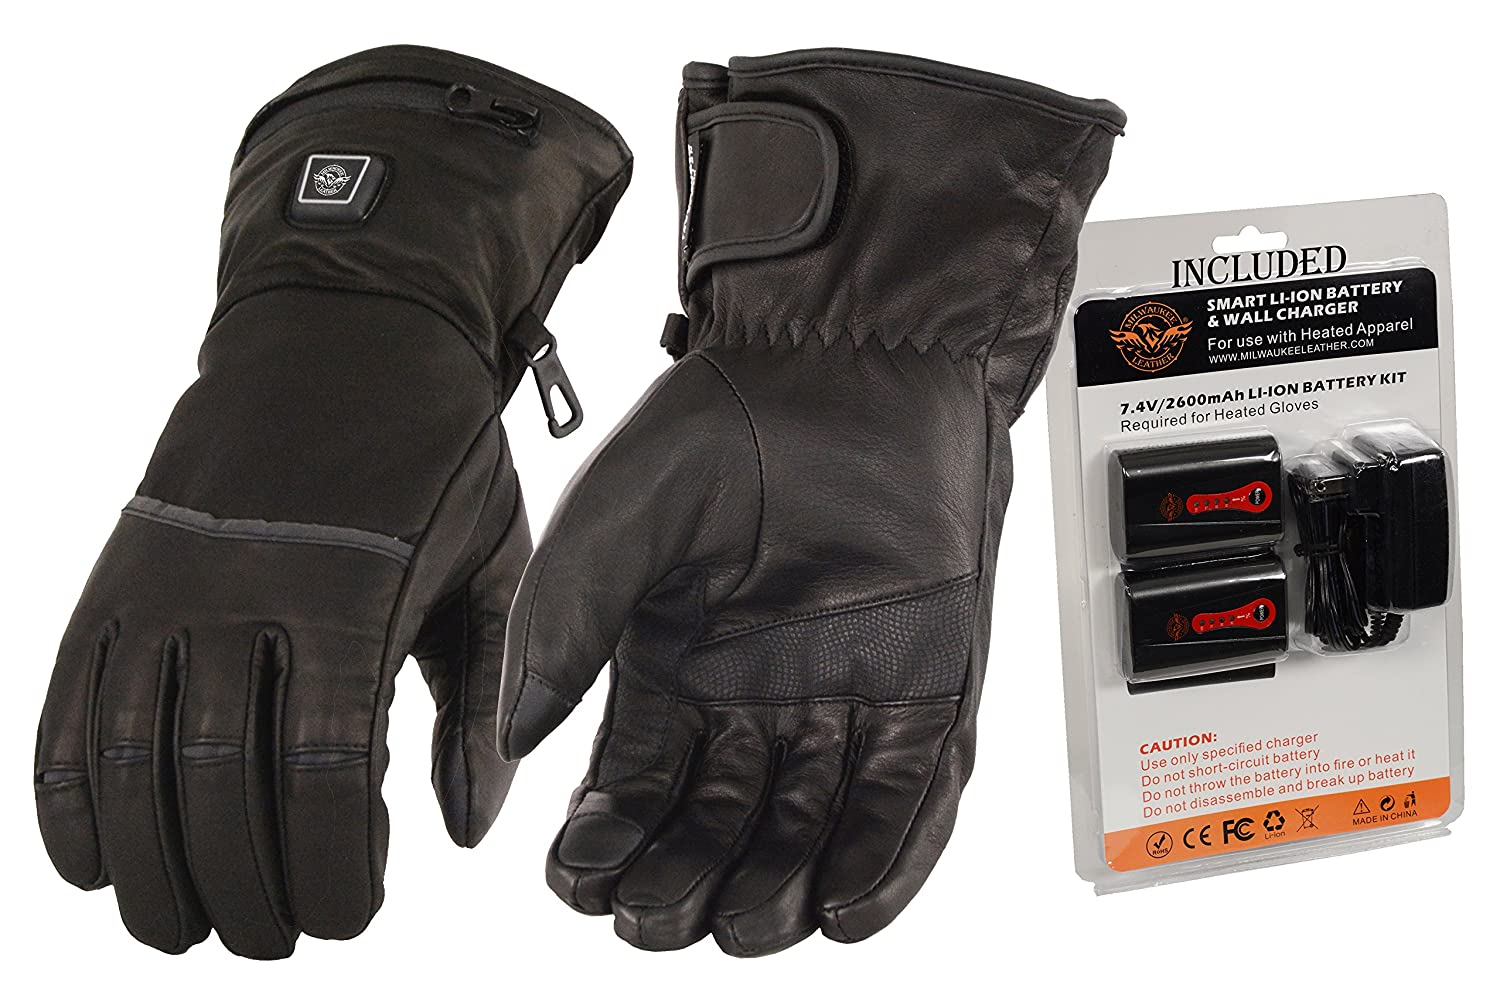 Milwaukee Leather MG7513-SET-BLACK-M Men's Heated Gantlet Glove with Touch Screen Black, M (8-8.5) M (8-8.5)